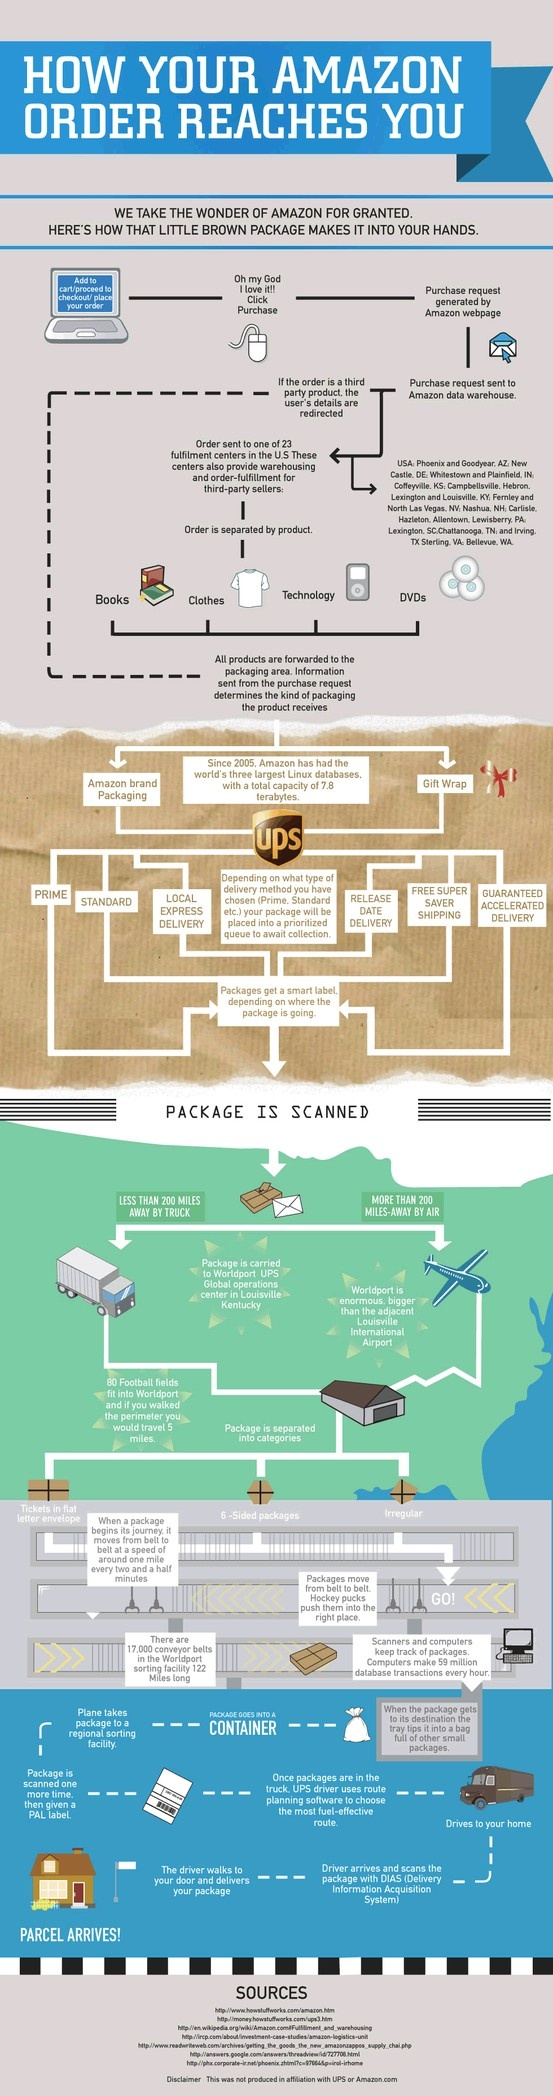 41 best In The Cloud images on Pinterest | Infographic, Big data and ...